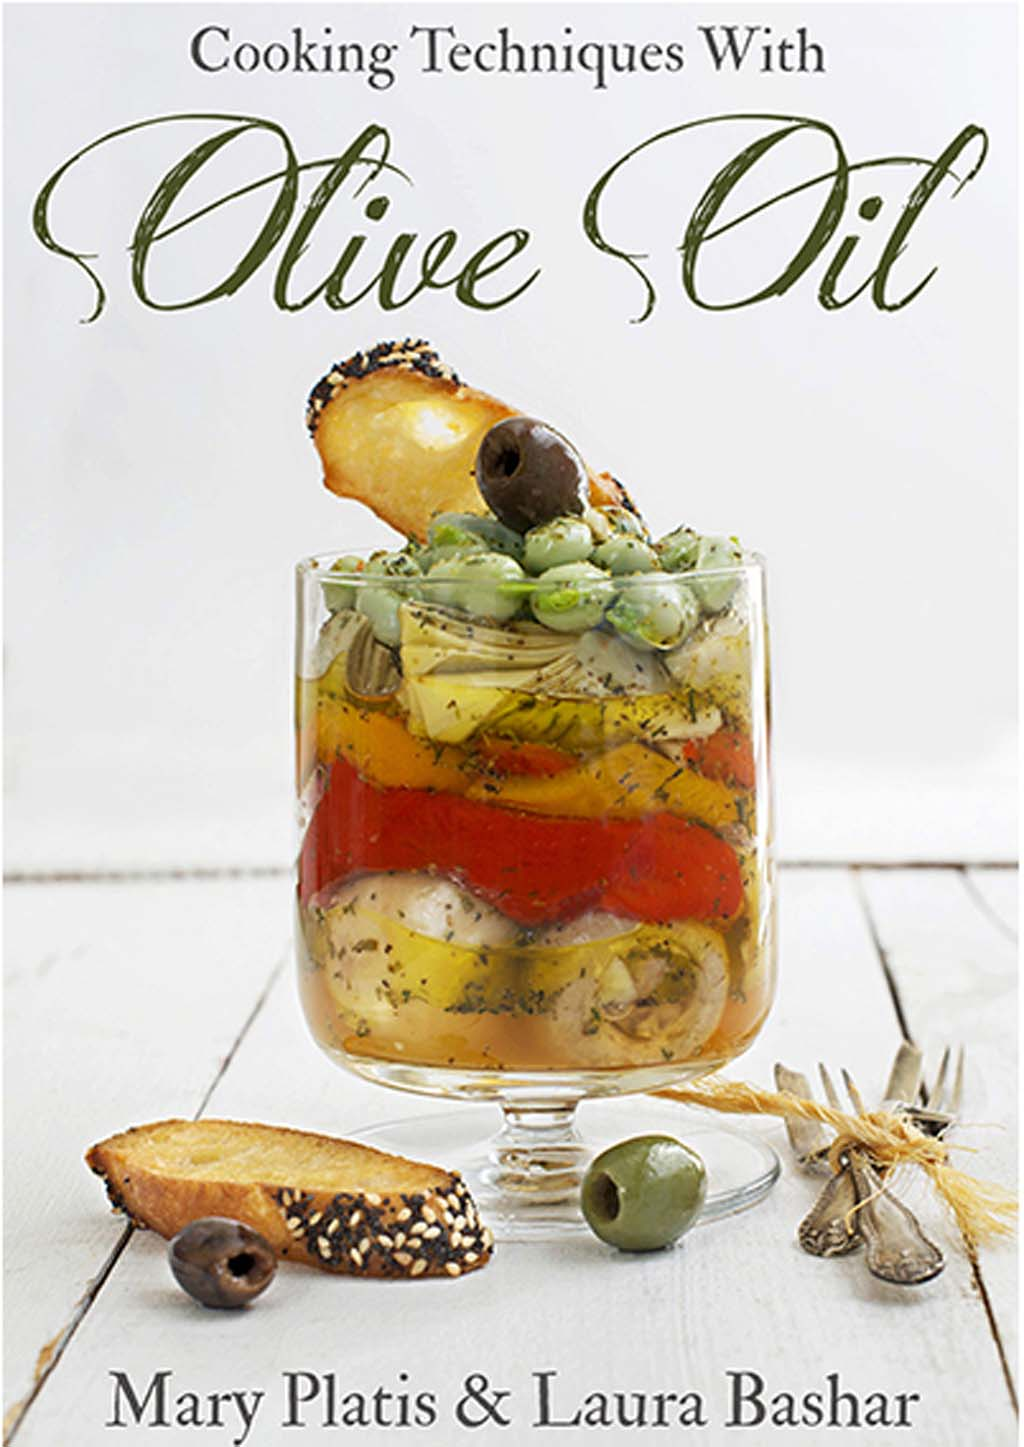 Cooking Techniques with Olive Oil by Laura Bashar and Mary Plati